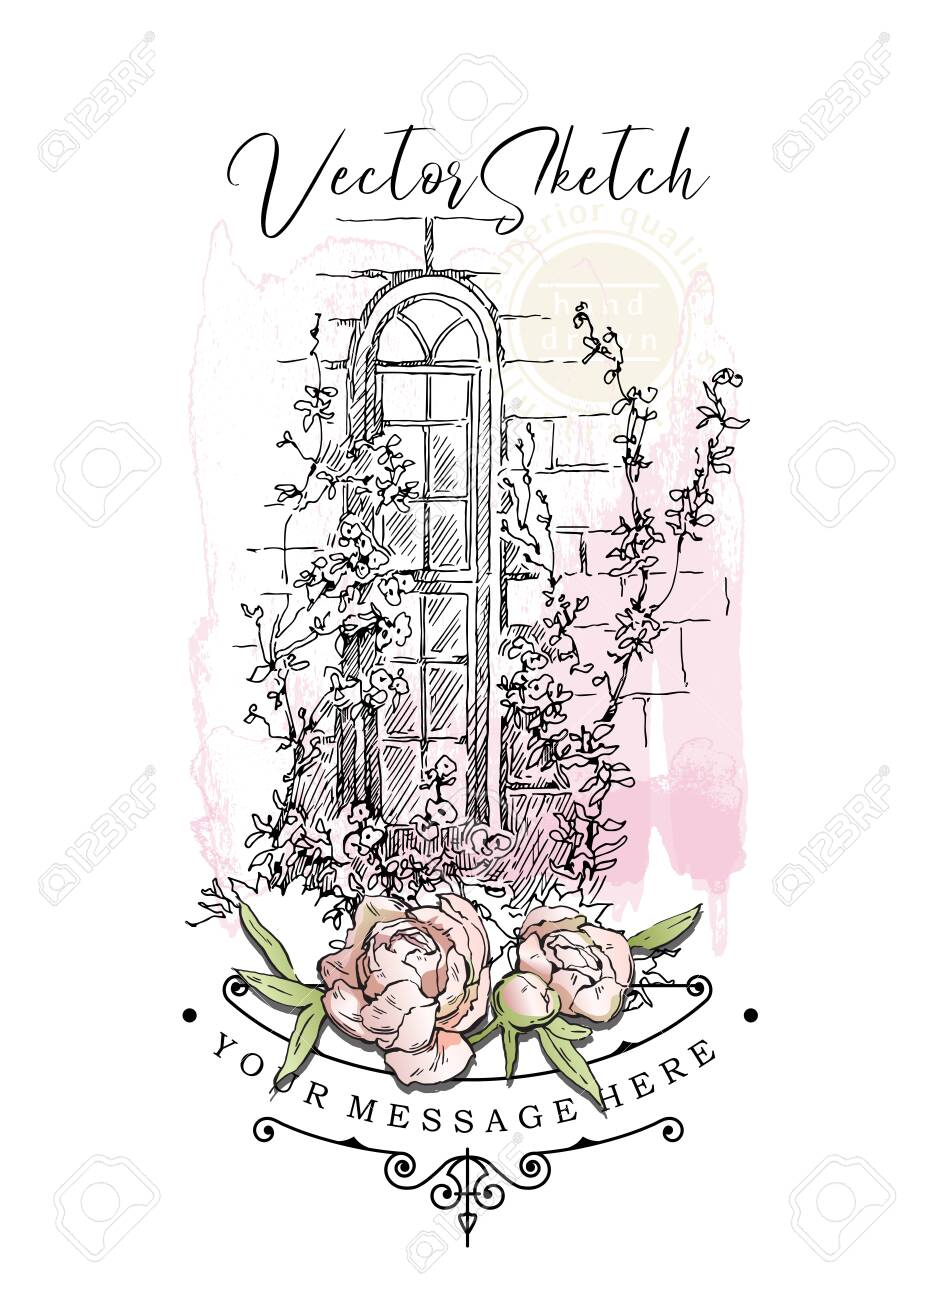 Hand drawing vector sketch of old street view. Shabby chic sharming drawings. Scrapbooking kit. European archtecture elements. Windows, doors, old stone walls. Rural landscape. Small town houses. Ink and pen isolated drawings. - 142220049